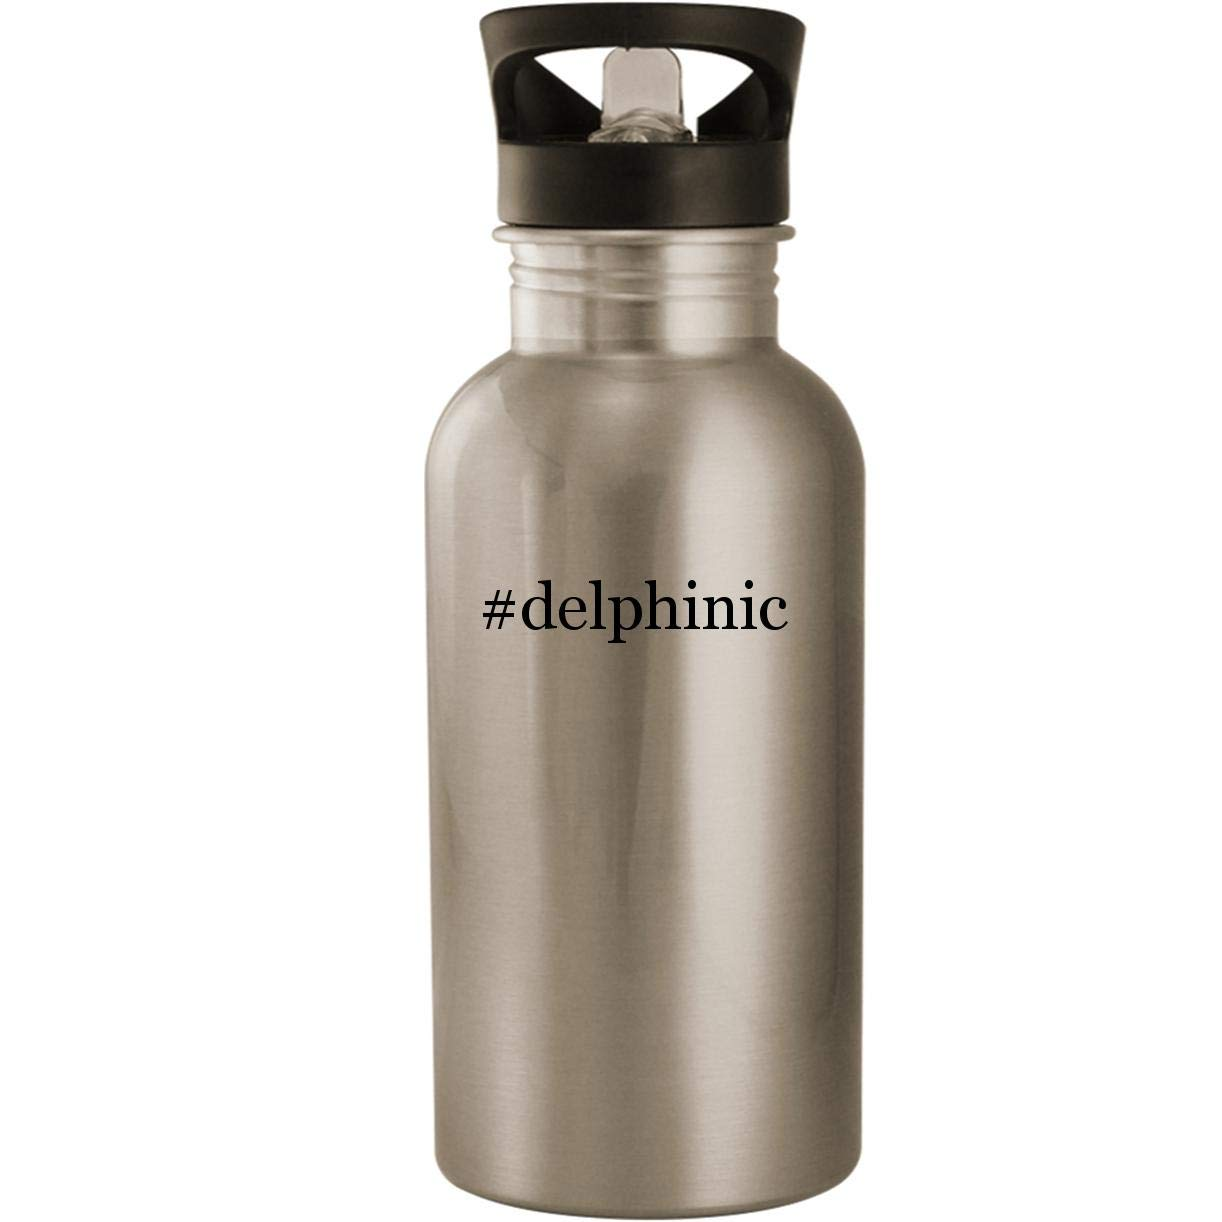 #delphinic - Stainless Steel 20oz Road Ready Water Bottle, Silver by Molandra Products (Image #1)